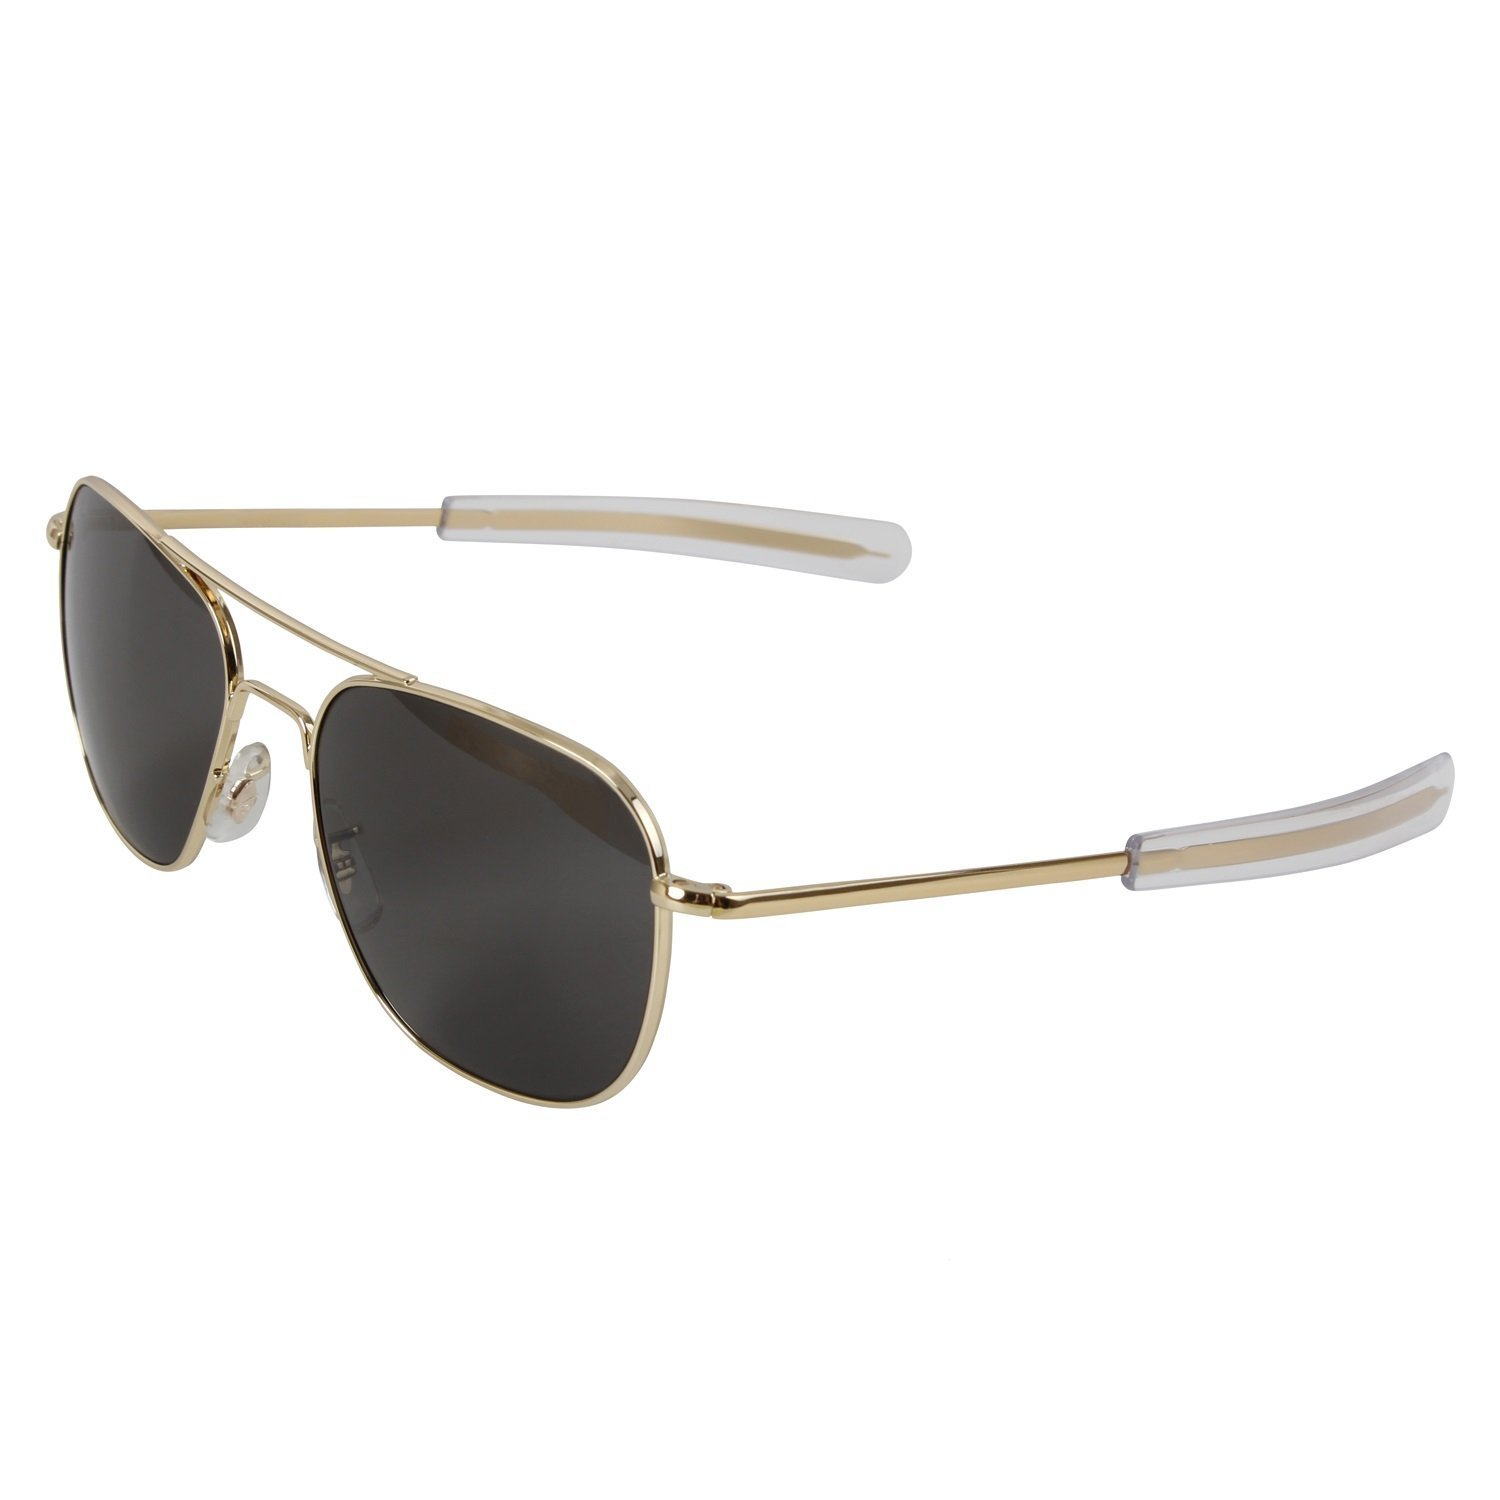 "GENUINE GOVERNMENT AIR FORCE PILOTS SUNGLASSES BY ""AMERICAN OPTICS"" (57 MM, Gold)"